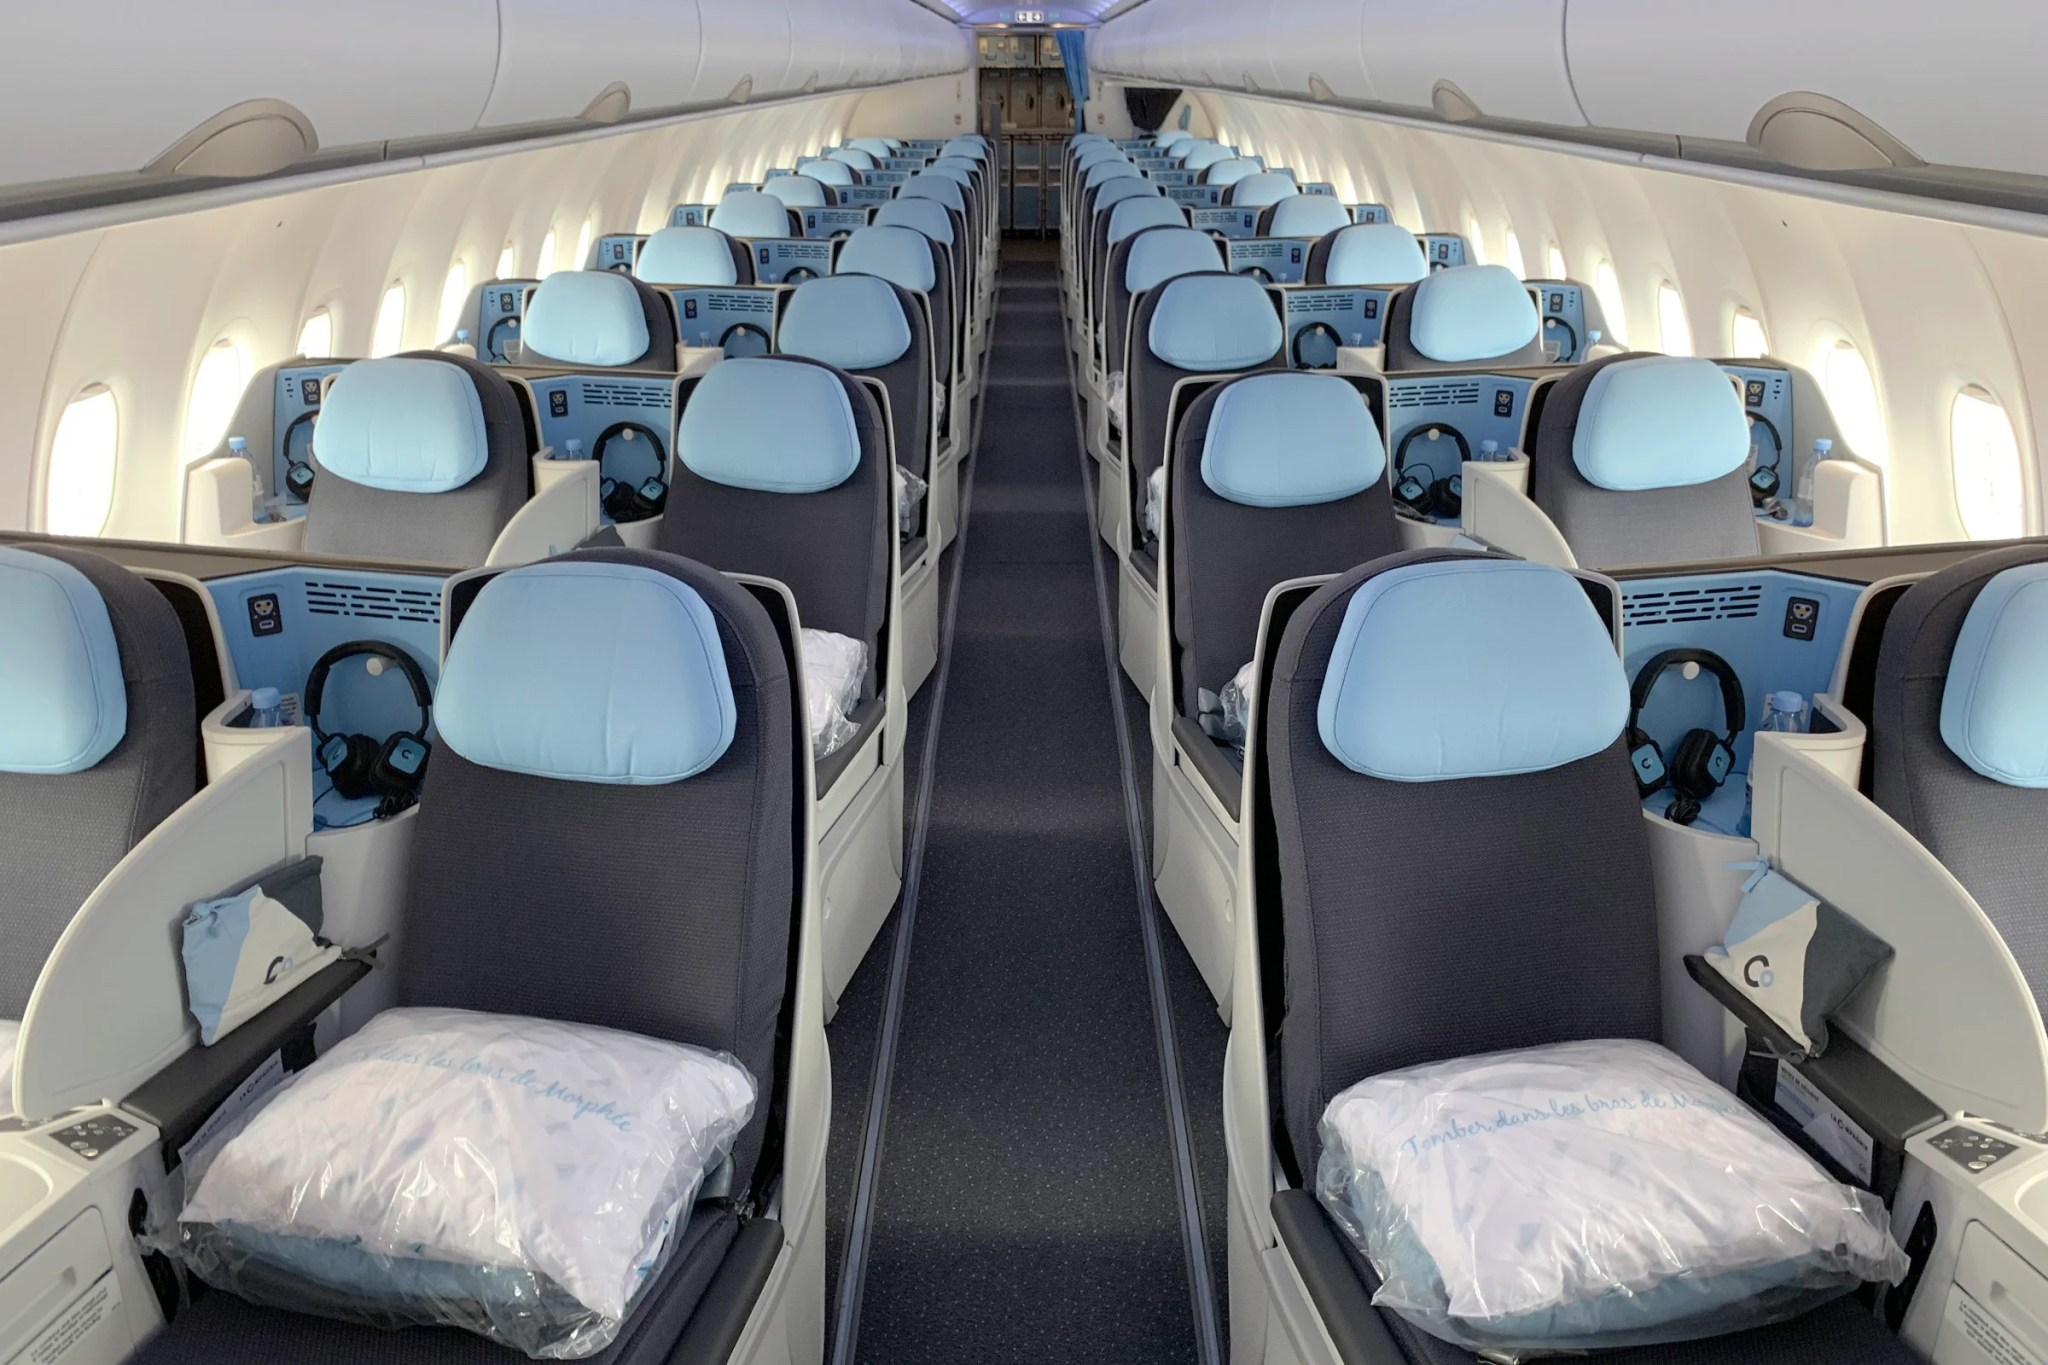 Wondrous Review La Compagnies Airbus A321Lr From Paris To Newark Alphanode Cool Chair Designs And Ideas Alphanodeonline